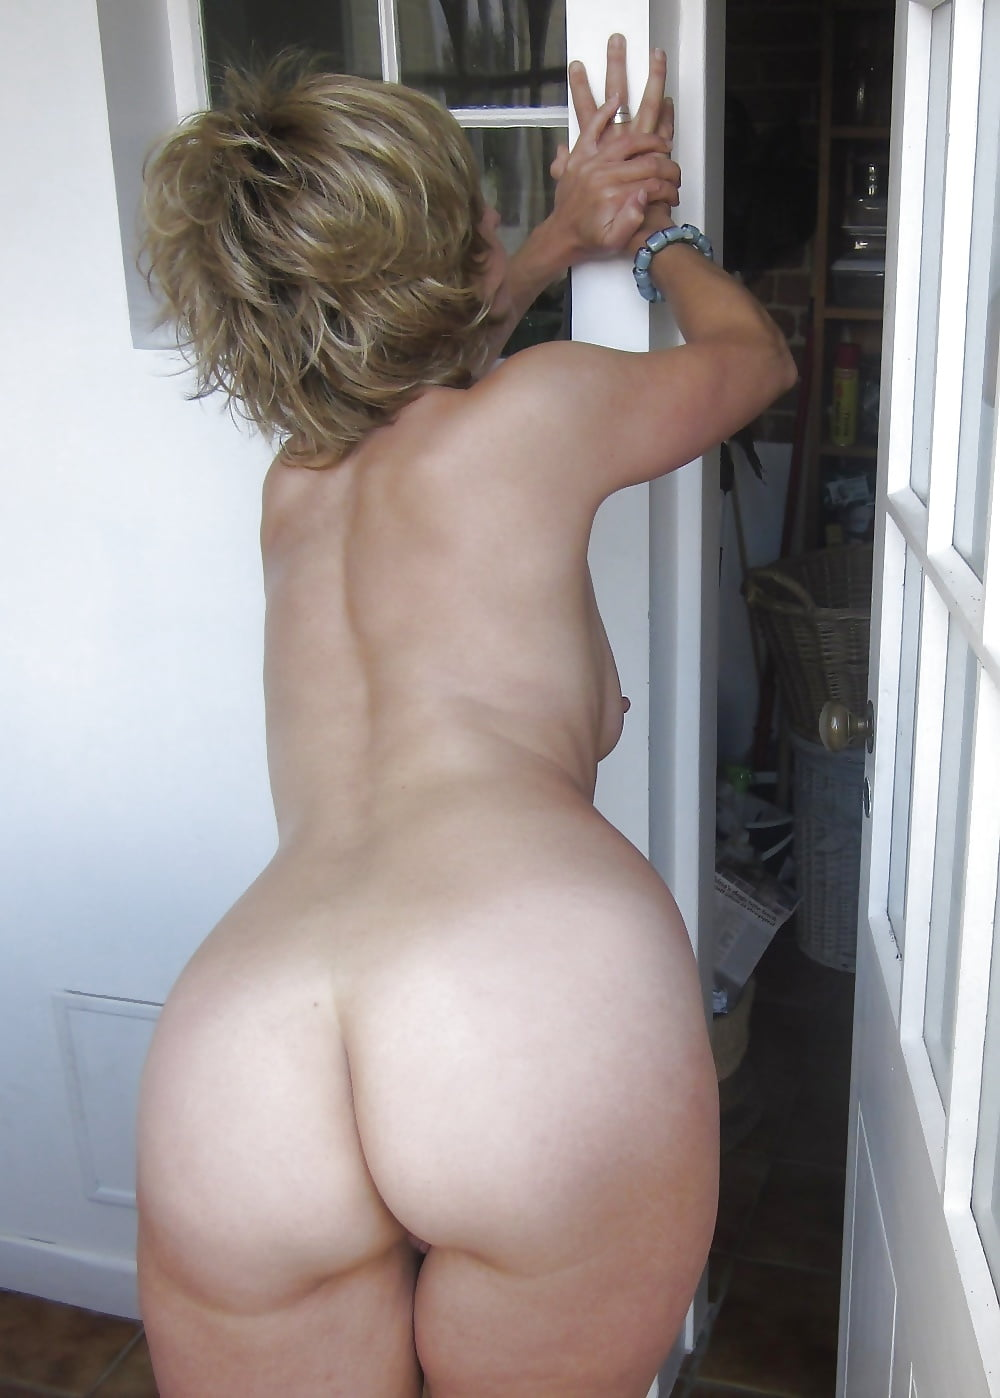 amateur-best-nude-butt-mature-women-fucking-women-animal